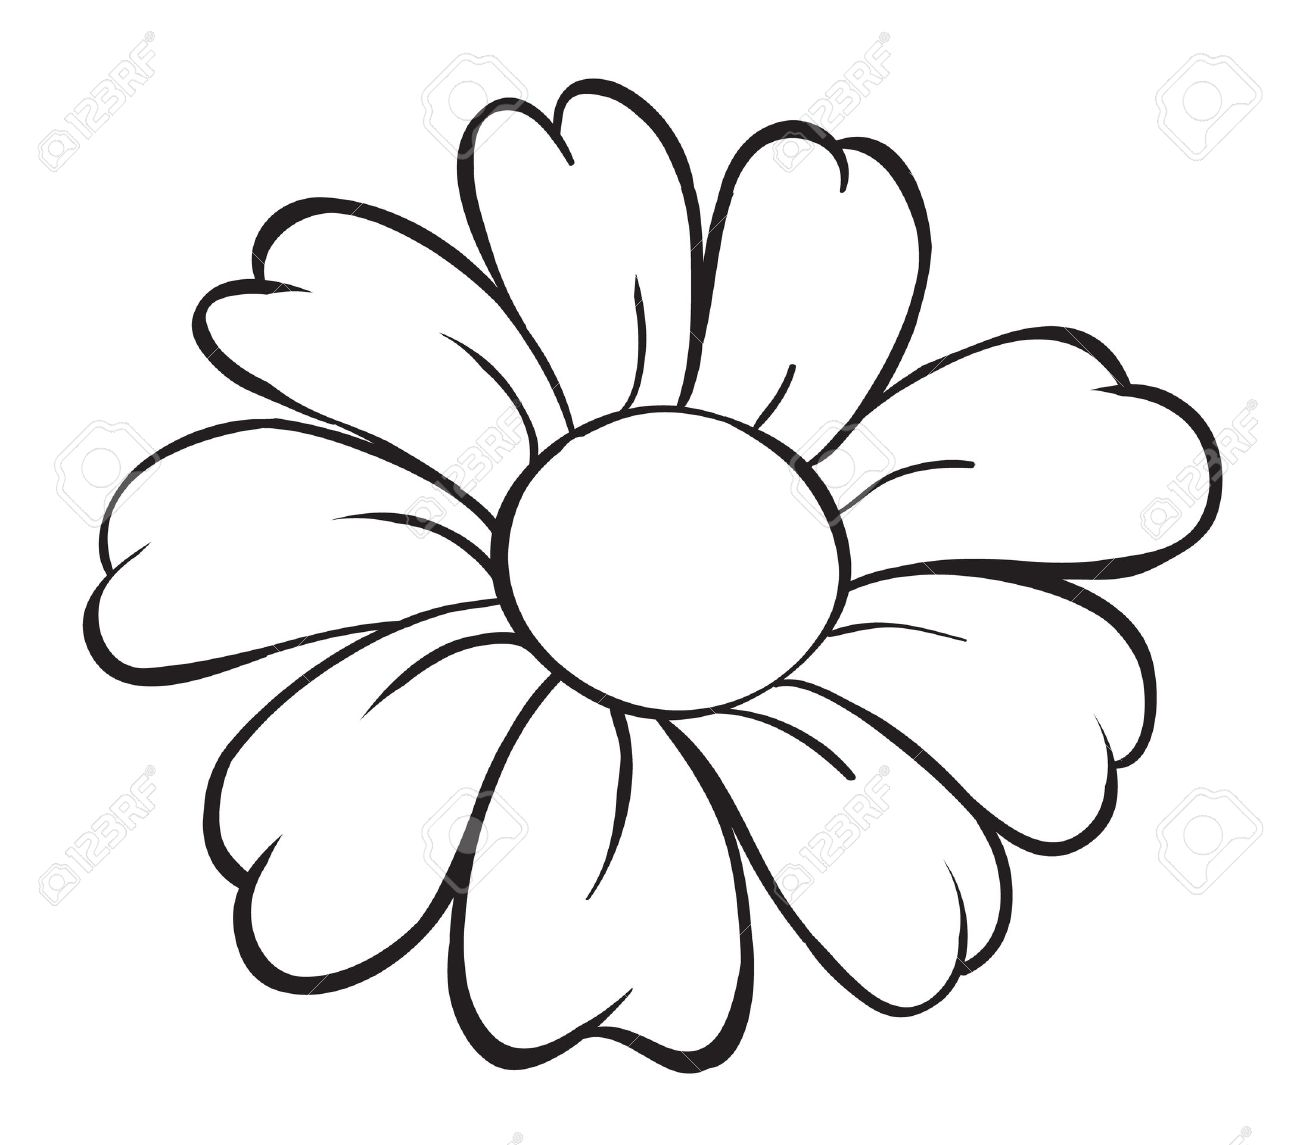 Flower Black And White Drawing At Getdrawings Free For